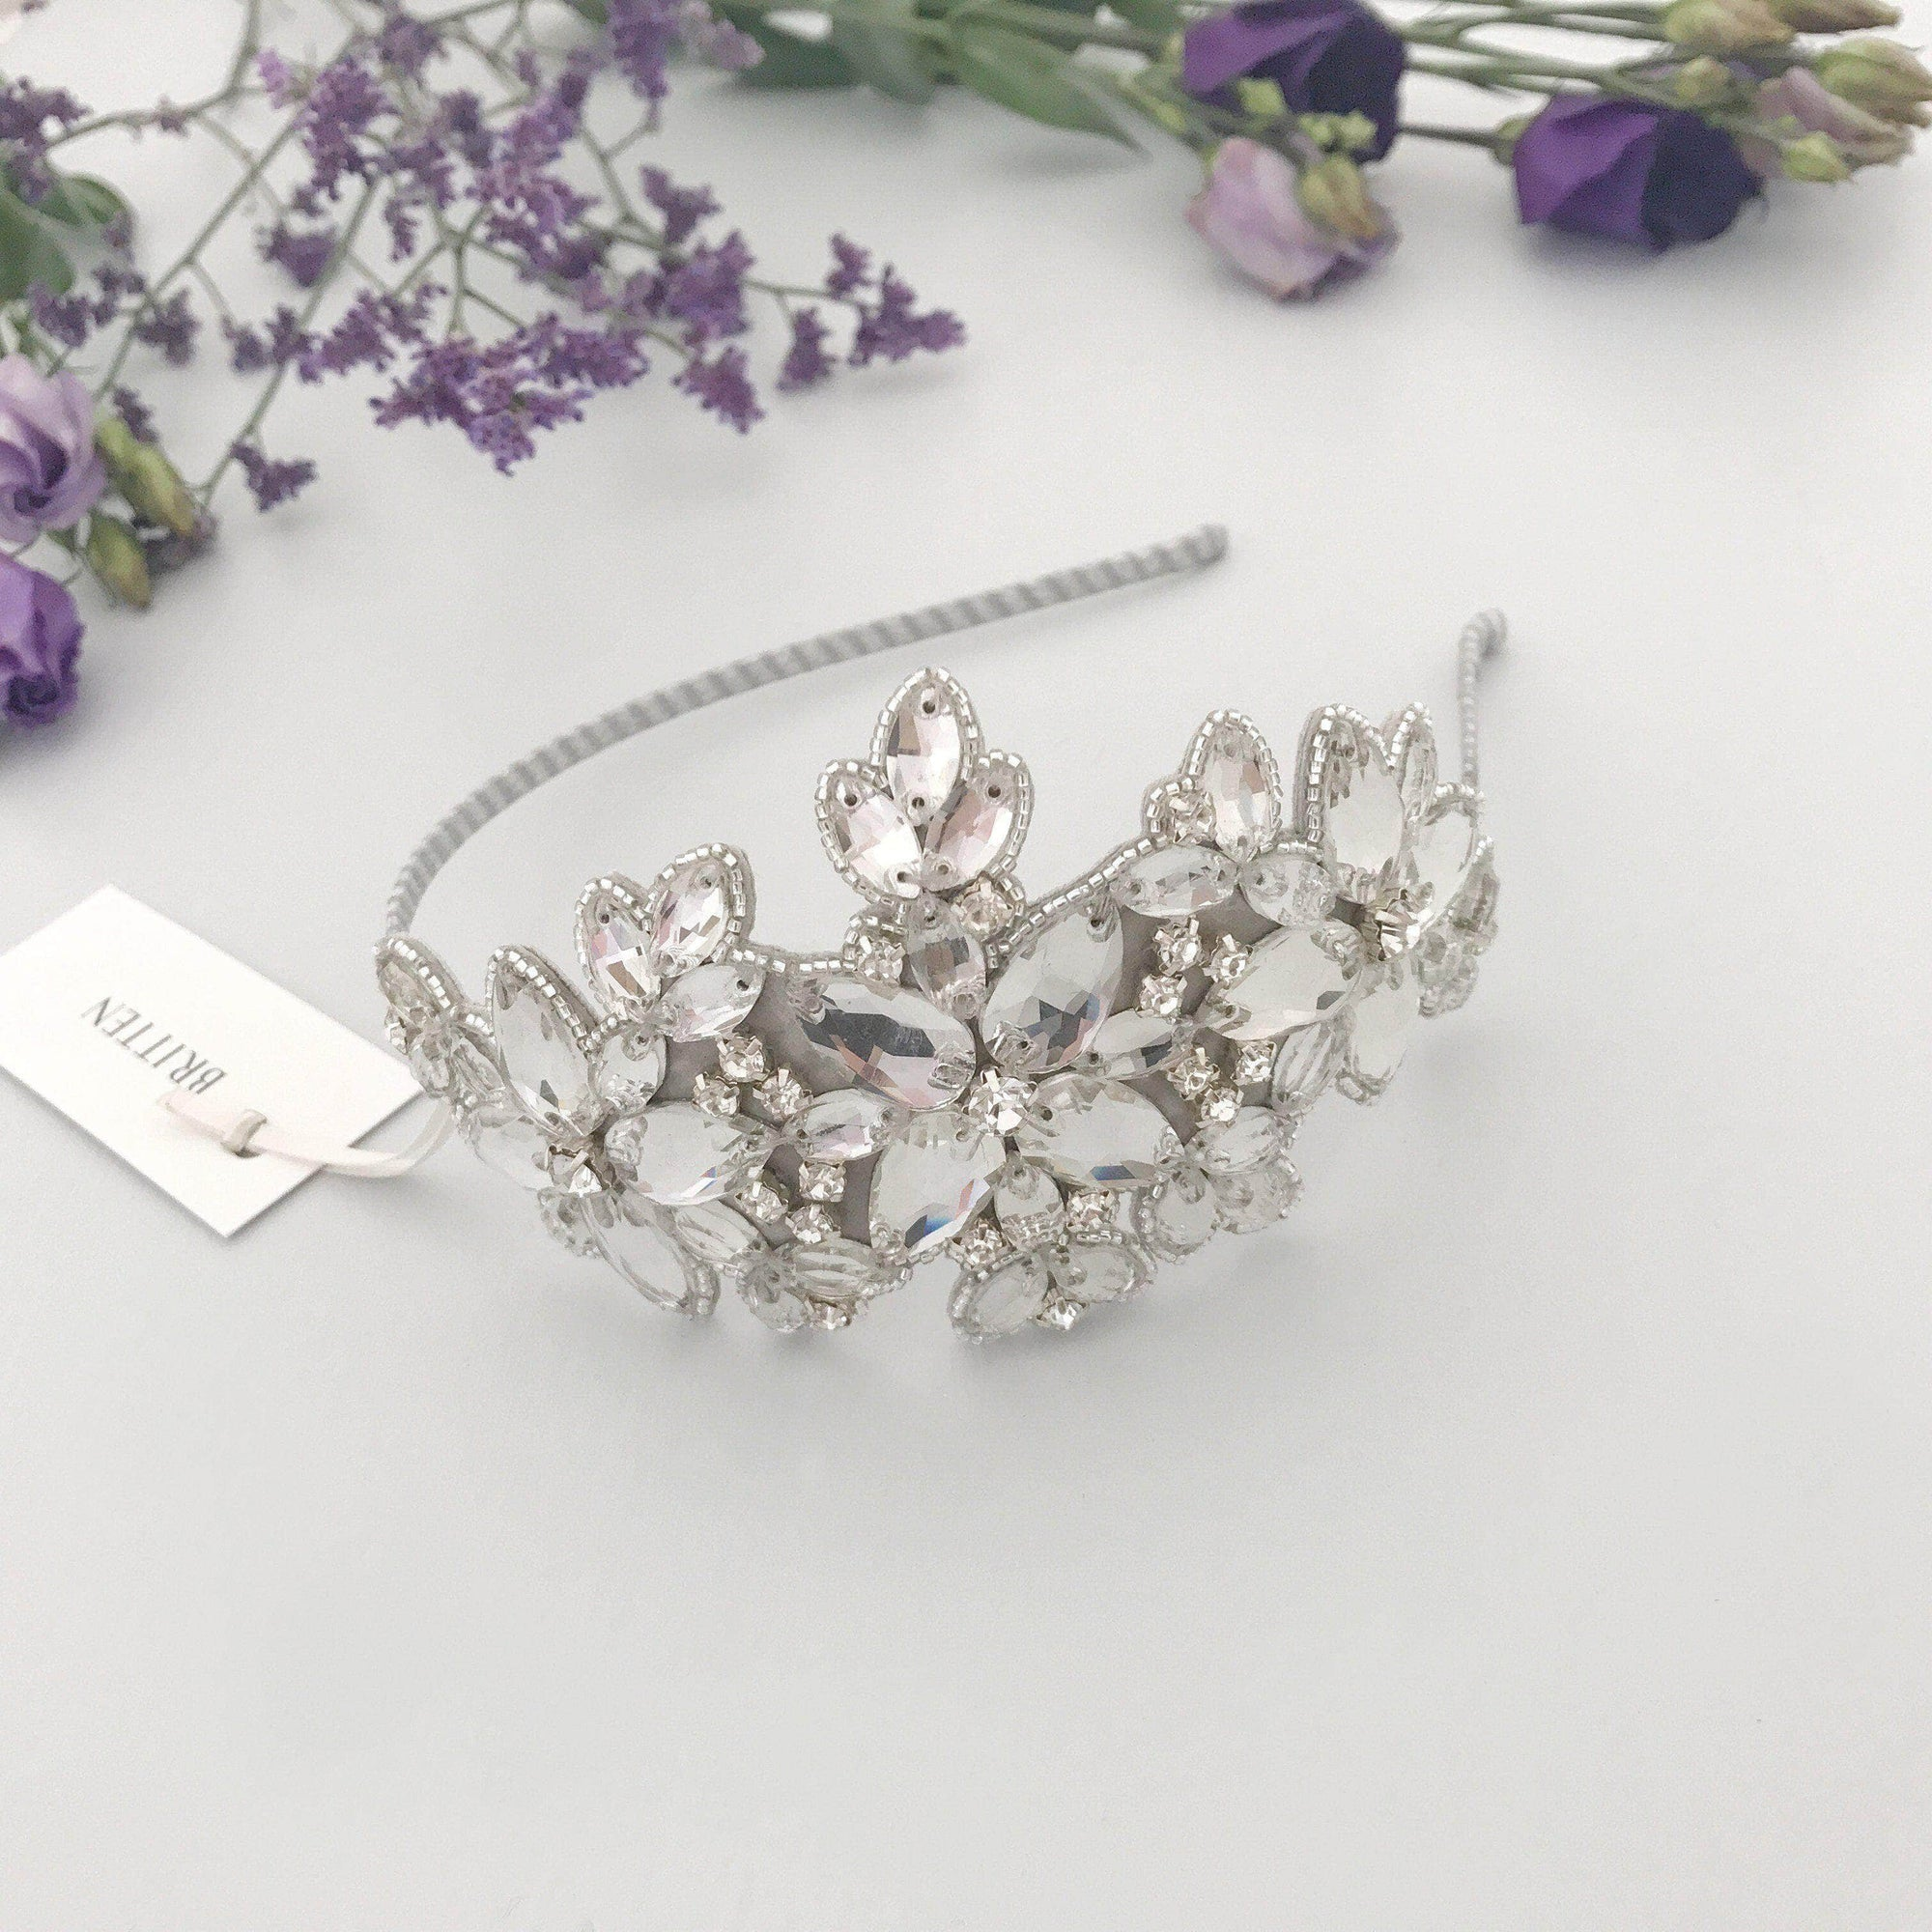 Wedding Headband Statement crystal wedding headband silver 'Laurie'